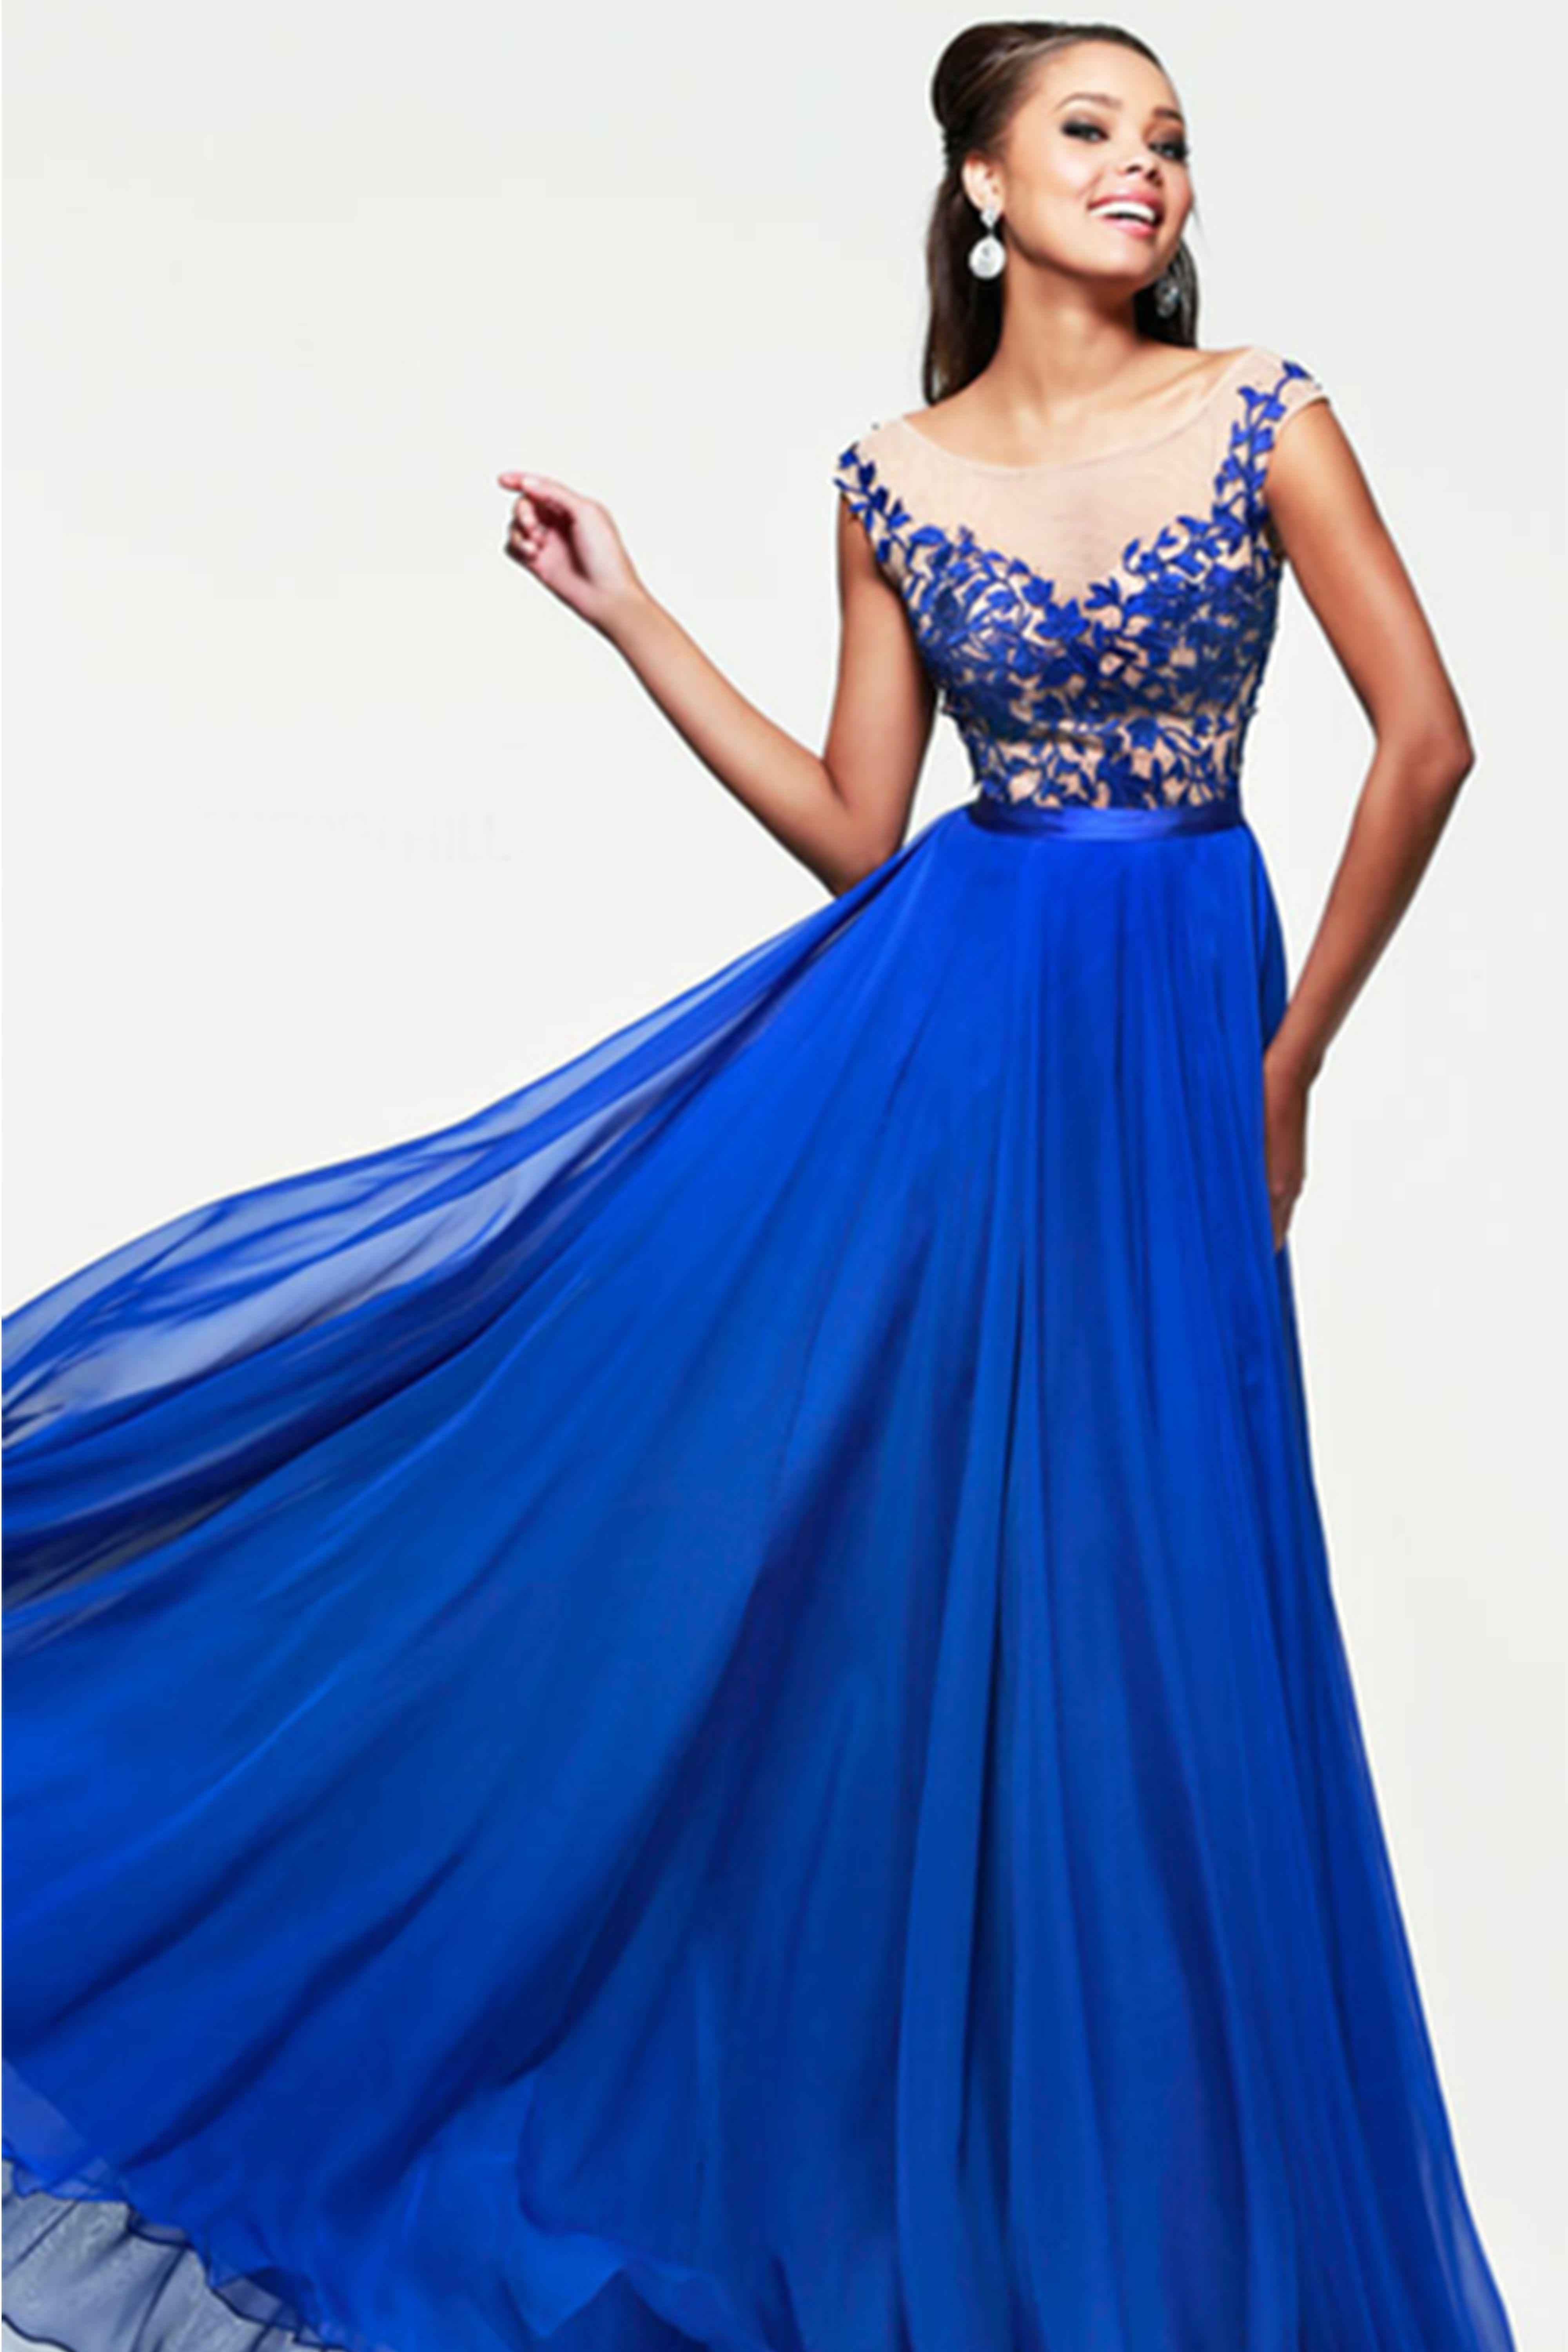 10 Best Blue Prom Dresses for 2018 in Royal, Navy and Baby Blue